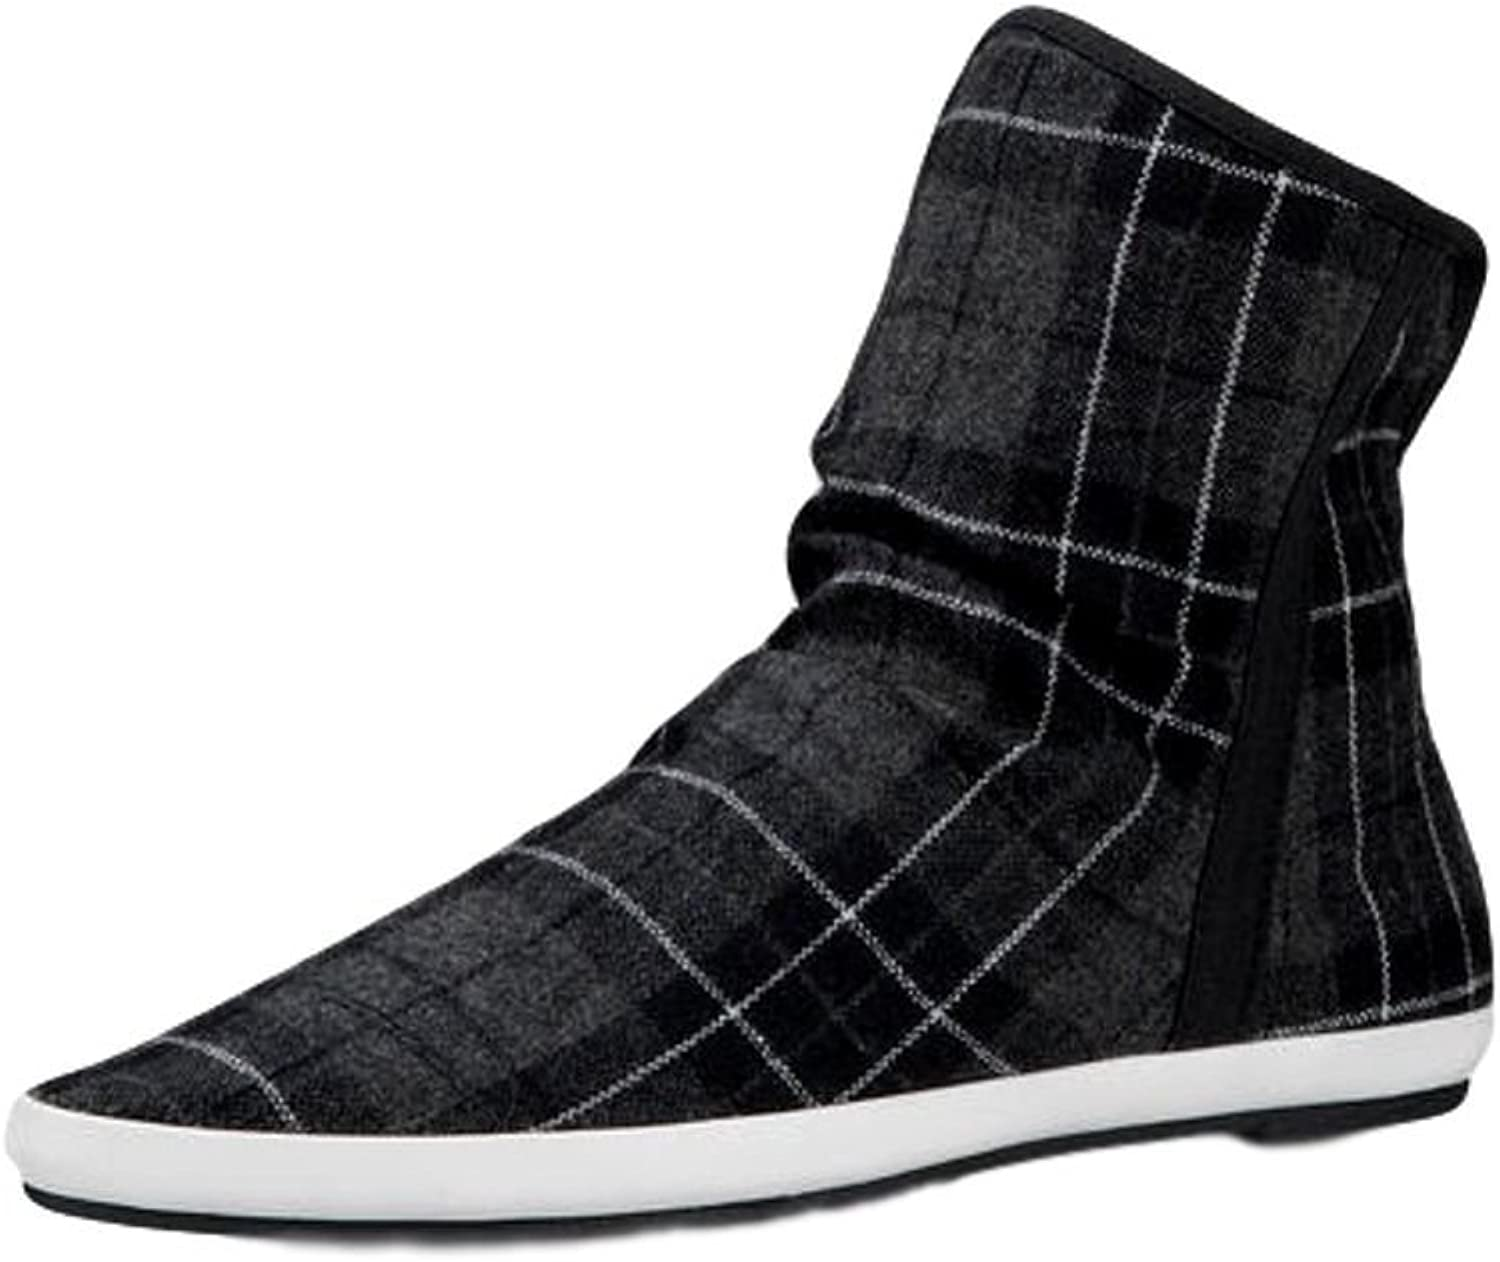 Sanuk Casual Boots Womens Kat Paw Sphynx Pointed 6 Black Plaid 1014691